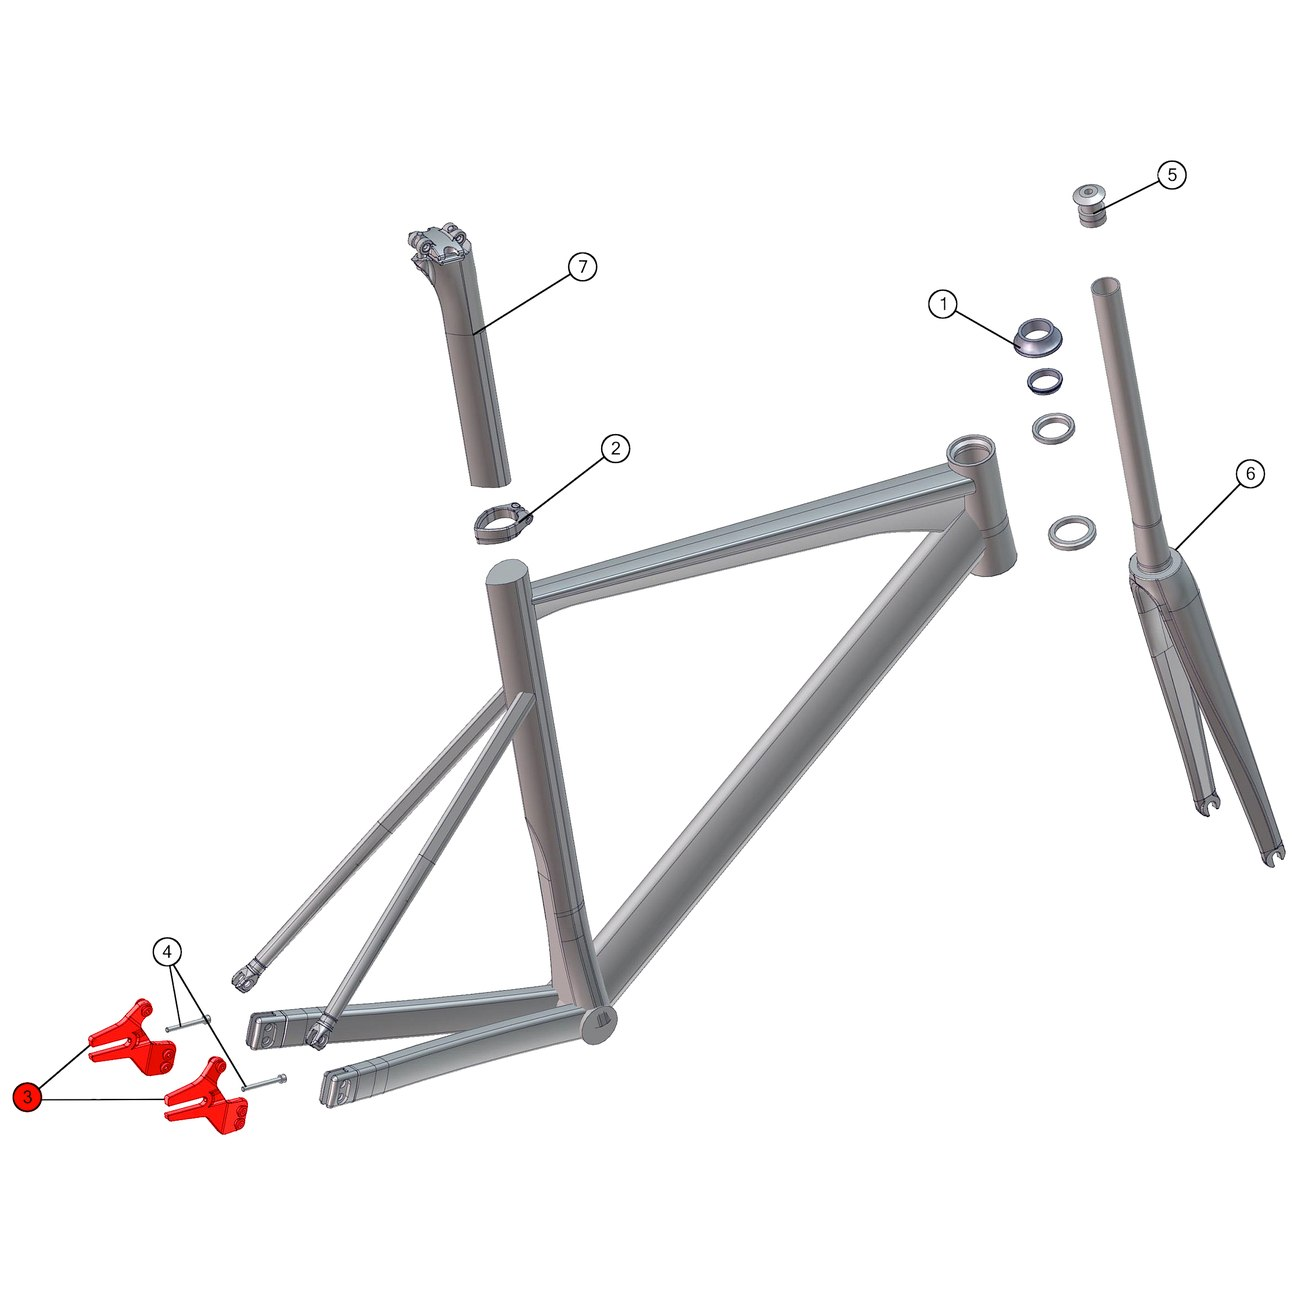 BMC Dropout #43 for Trackmachine 02 as from 2014 - 213701